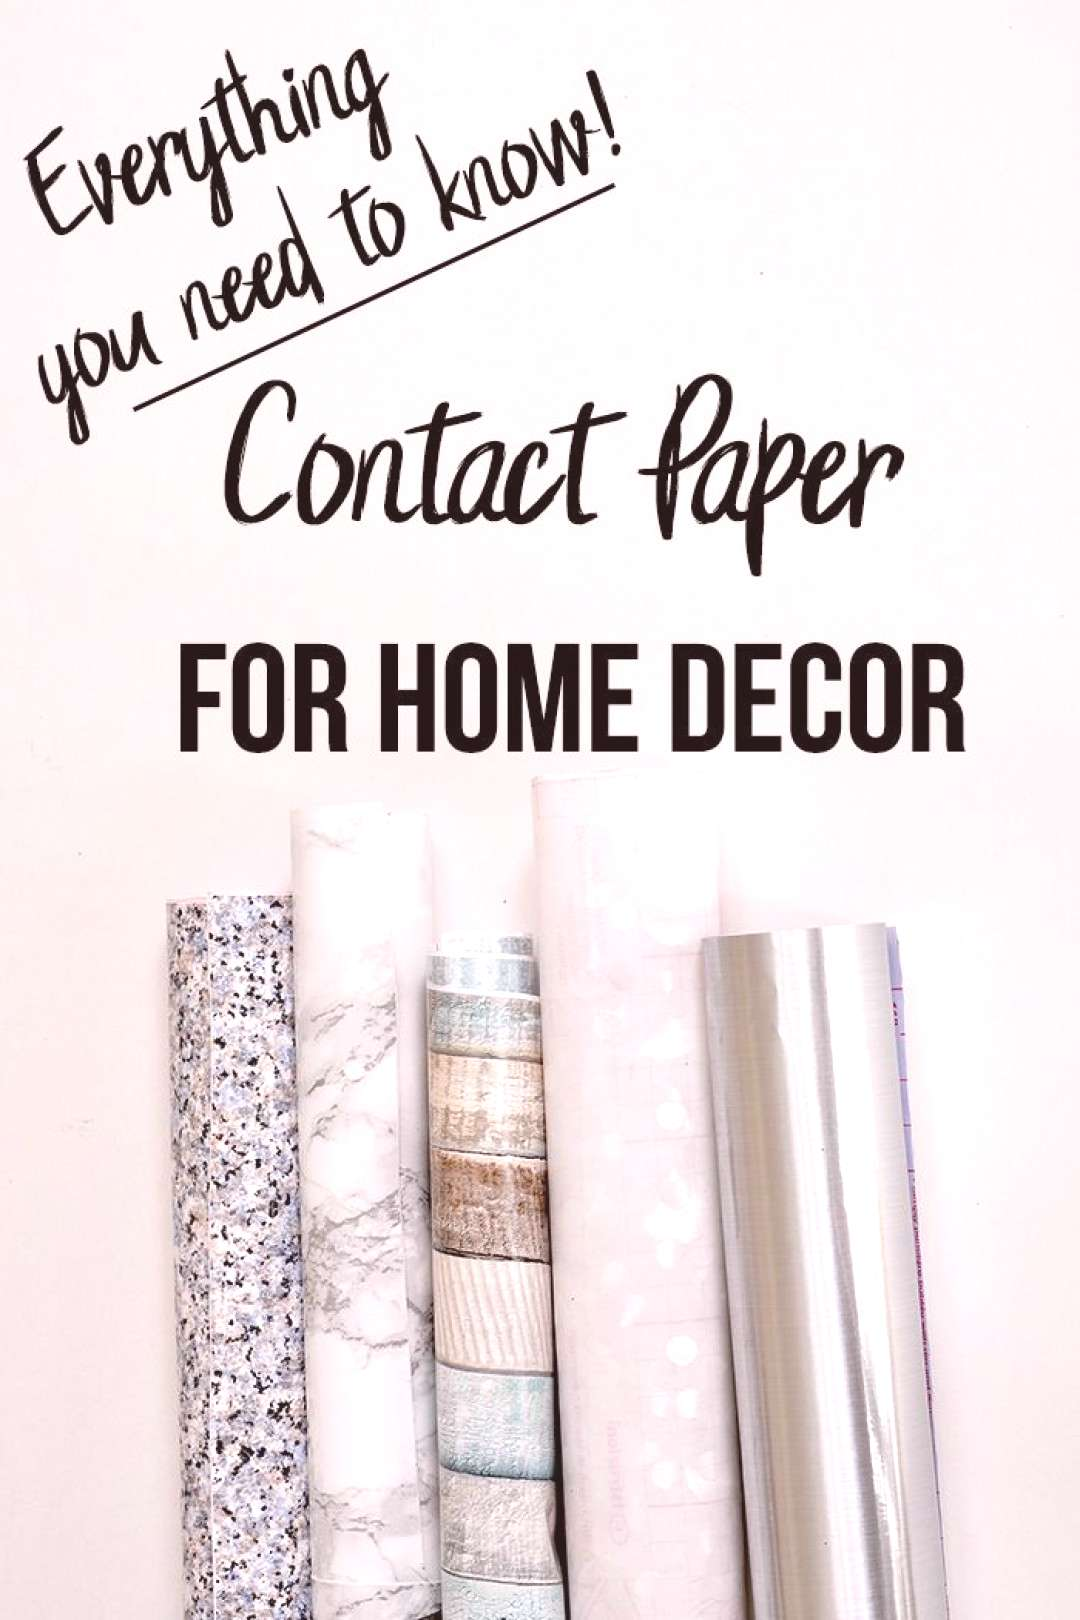 I had no idea Contact paper was so amazing!! DIY home decor with Contact paper is going to be so ea